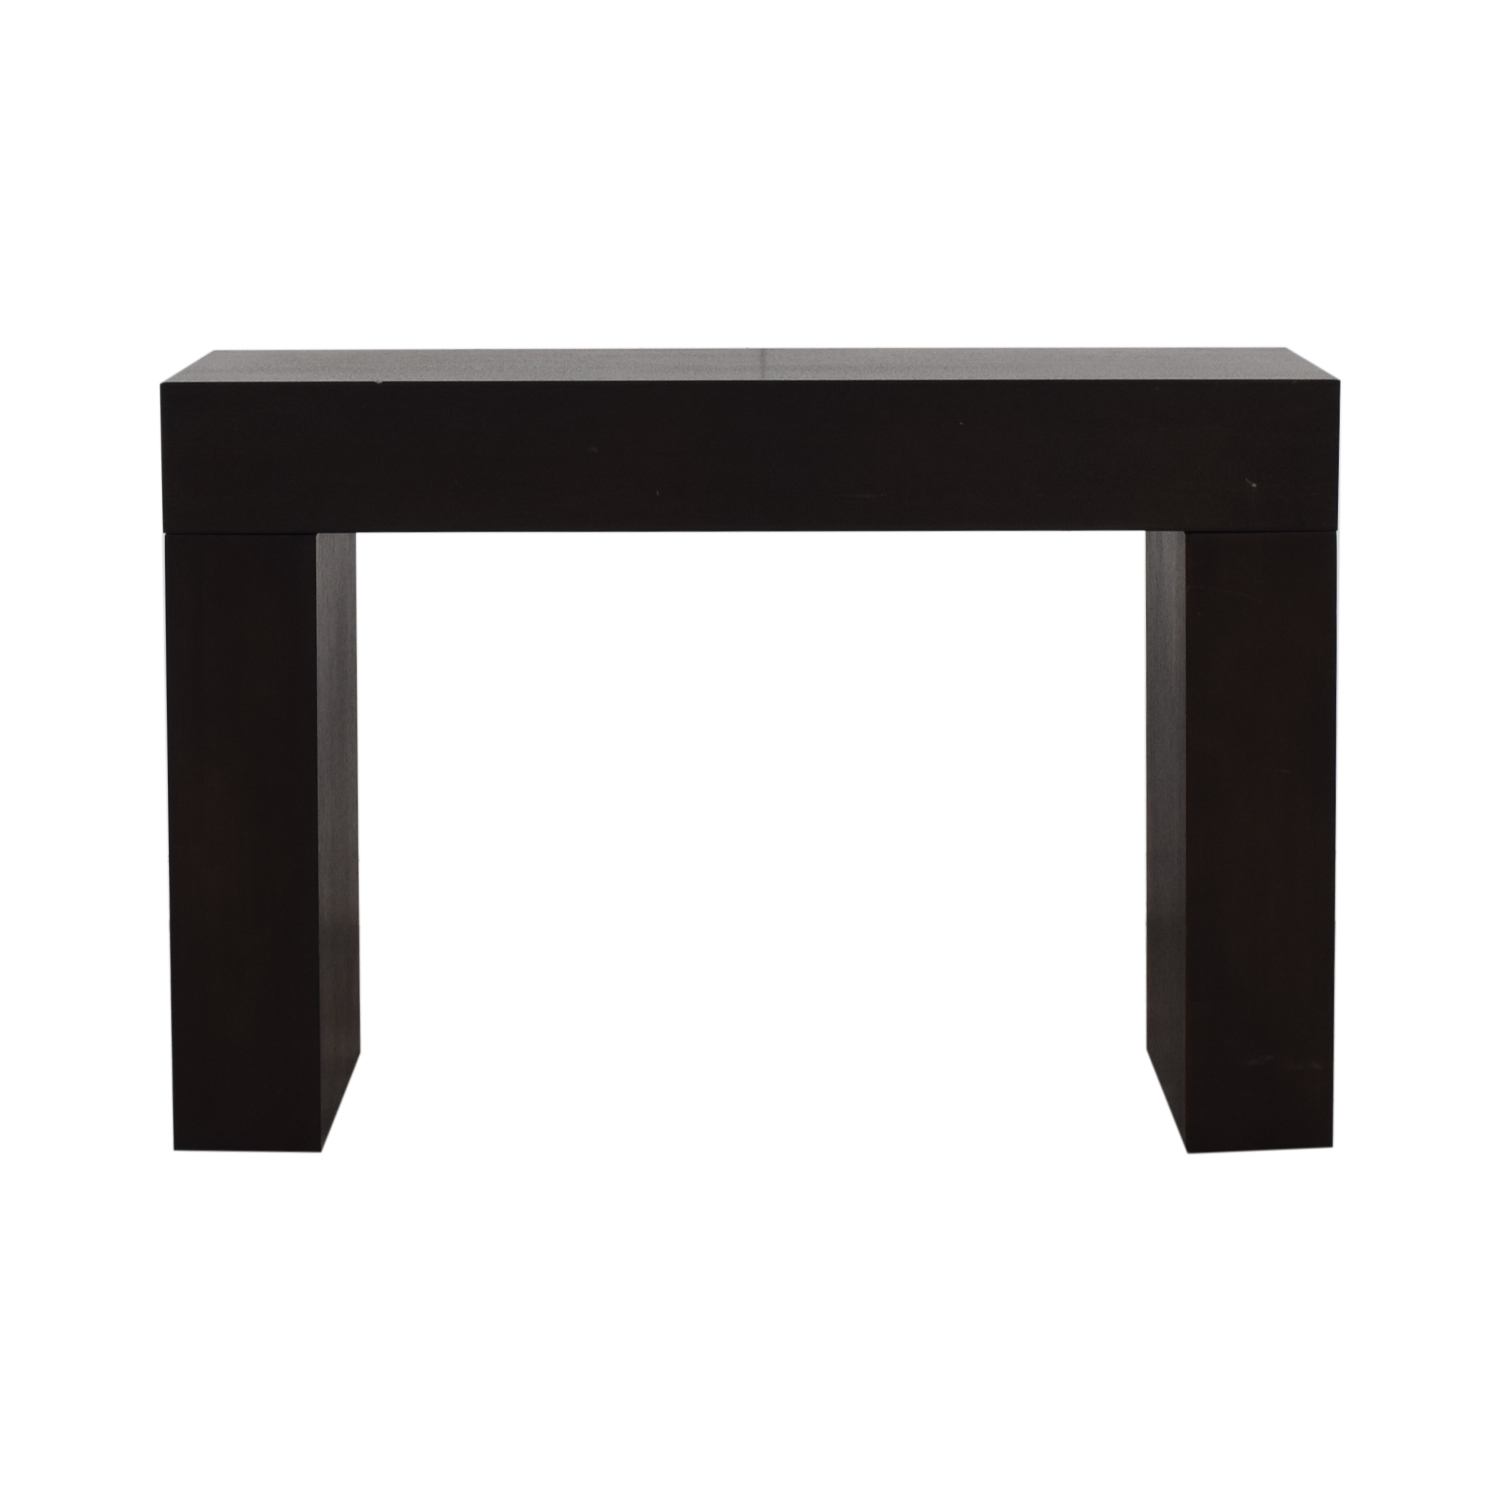 West Elm West Elm Console Table used